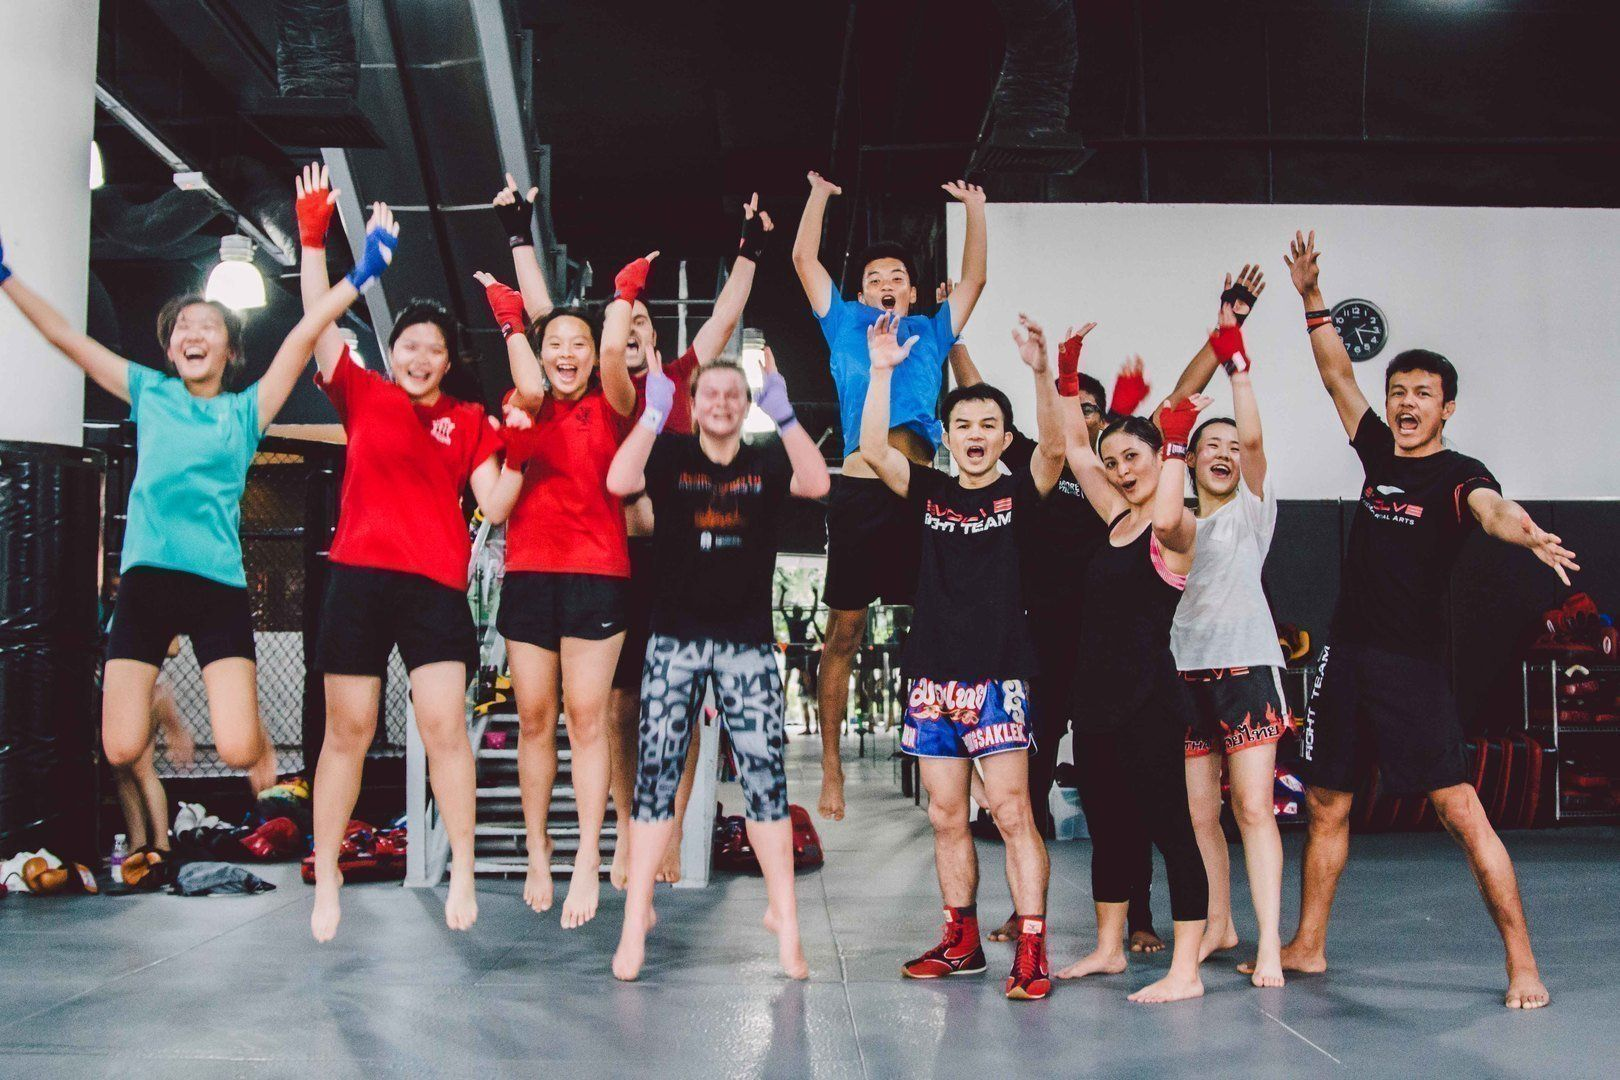 Just another fun boxing class at Evolve MMA!